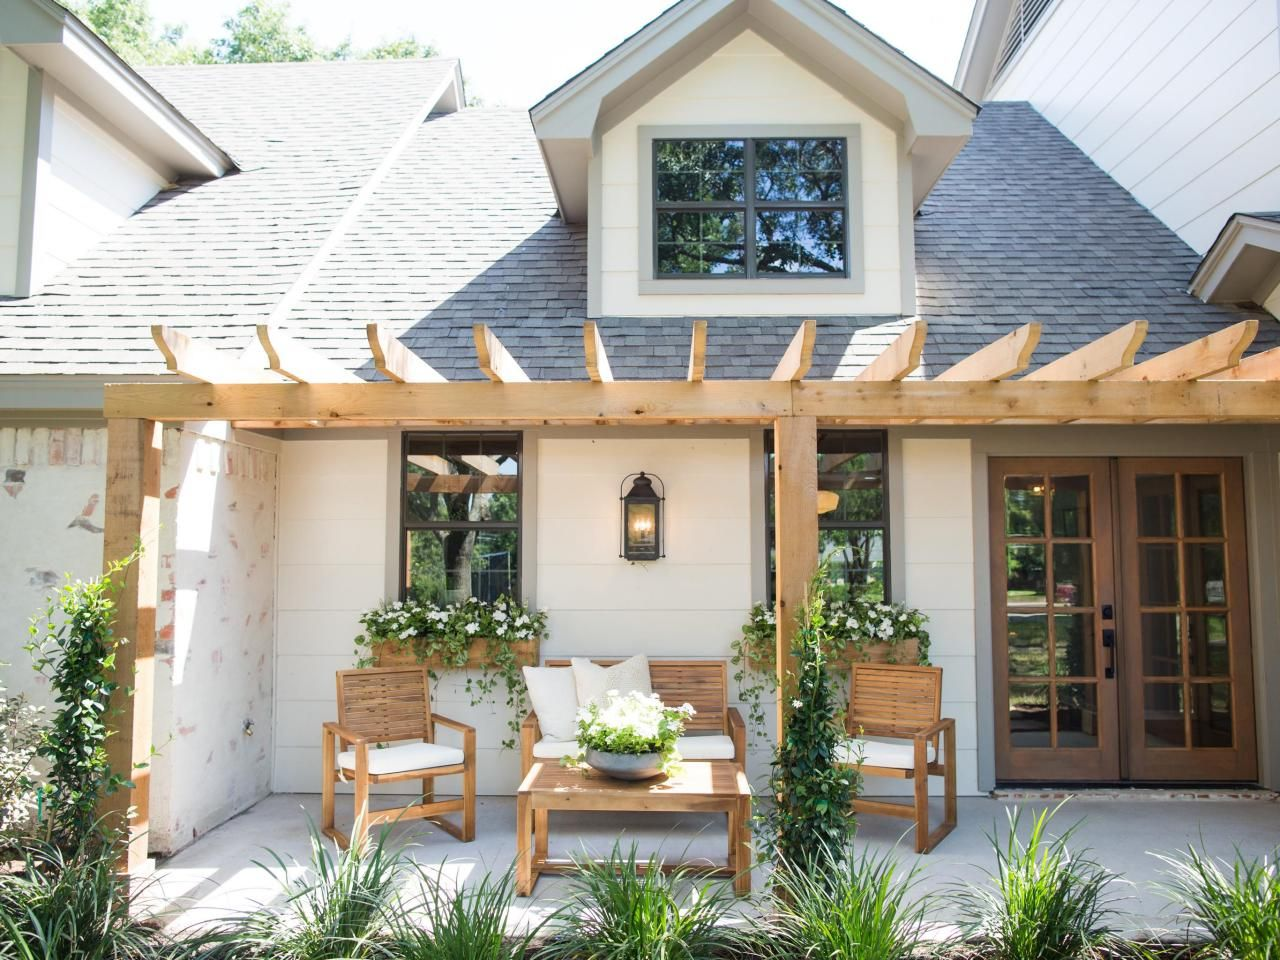 Photos hgtv 39 s fixer upper with chip and joanna gaines - Hgtv fixer upper exterior photos ...